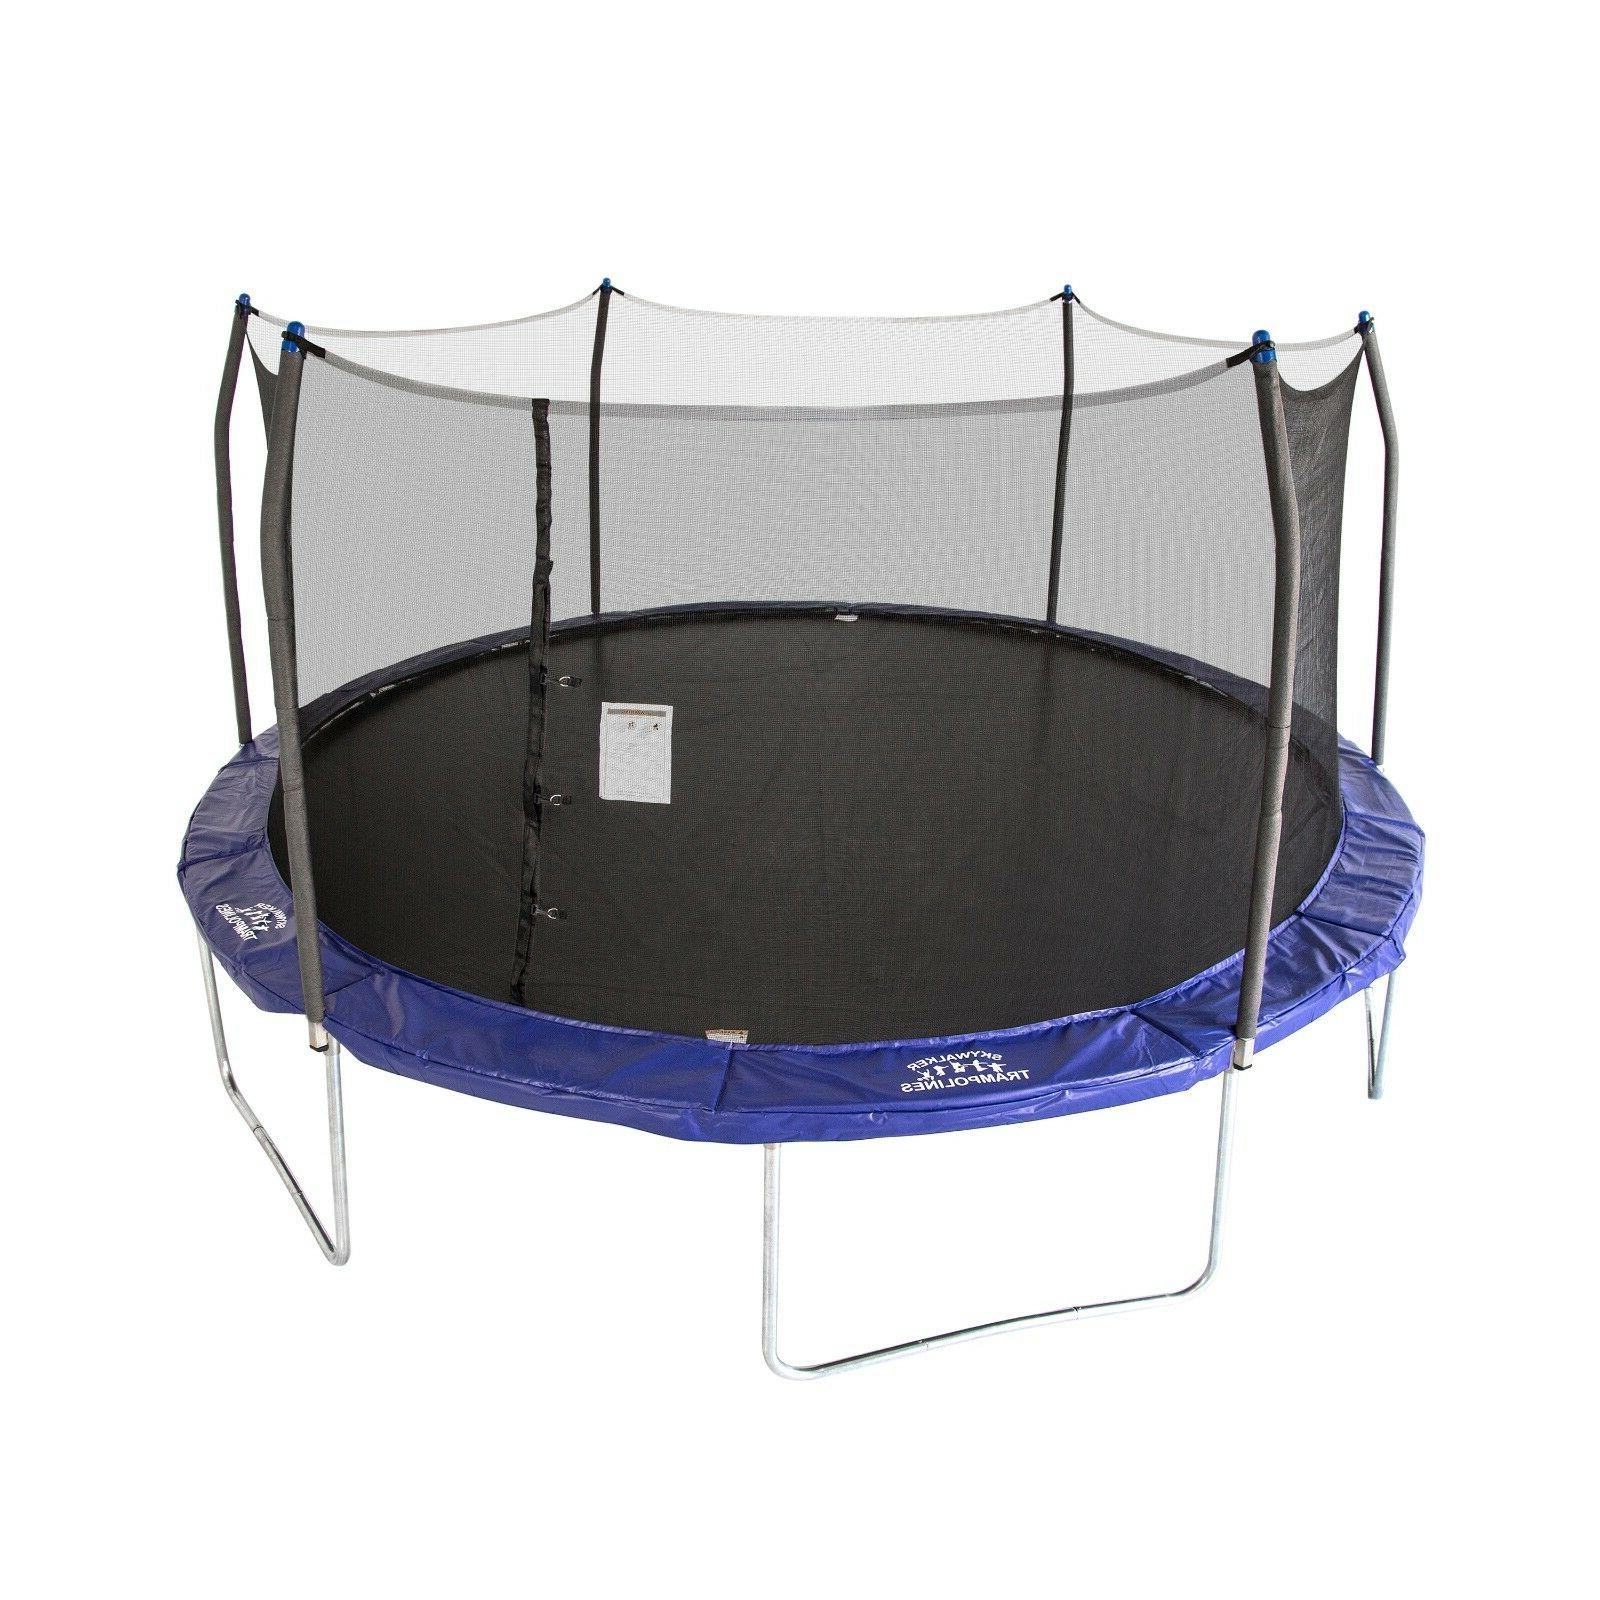 trampolines oval 16ft x 14ft with safety